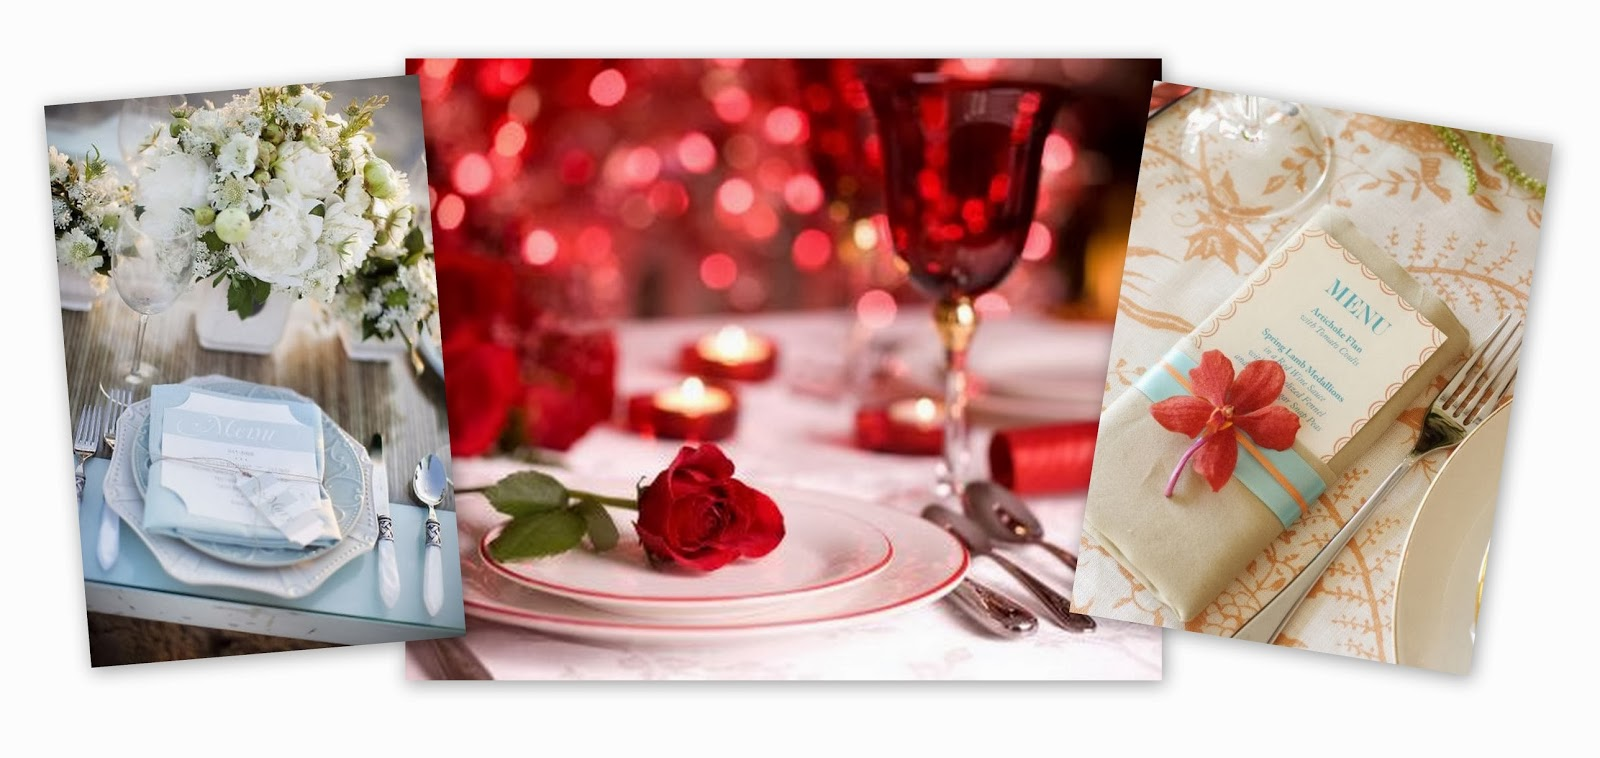 Table Setting, Dinner Menu, Romantic, Placecards